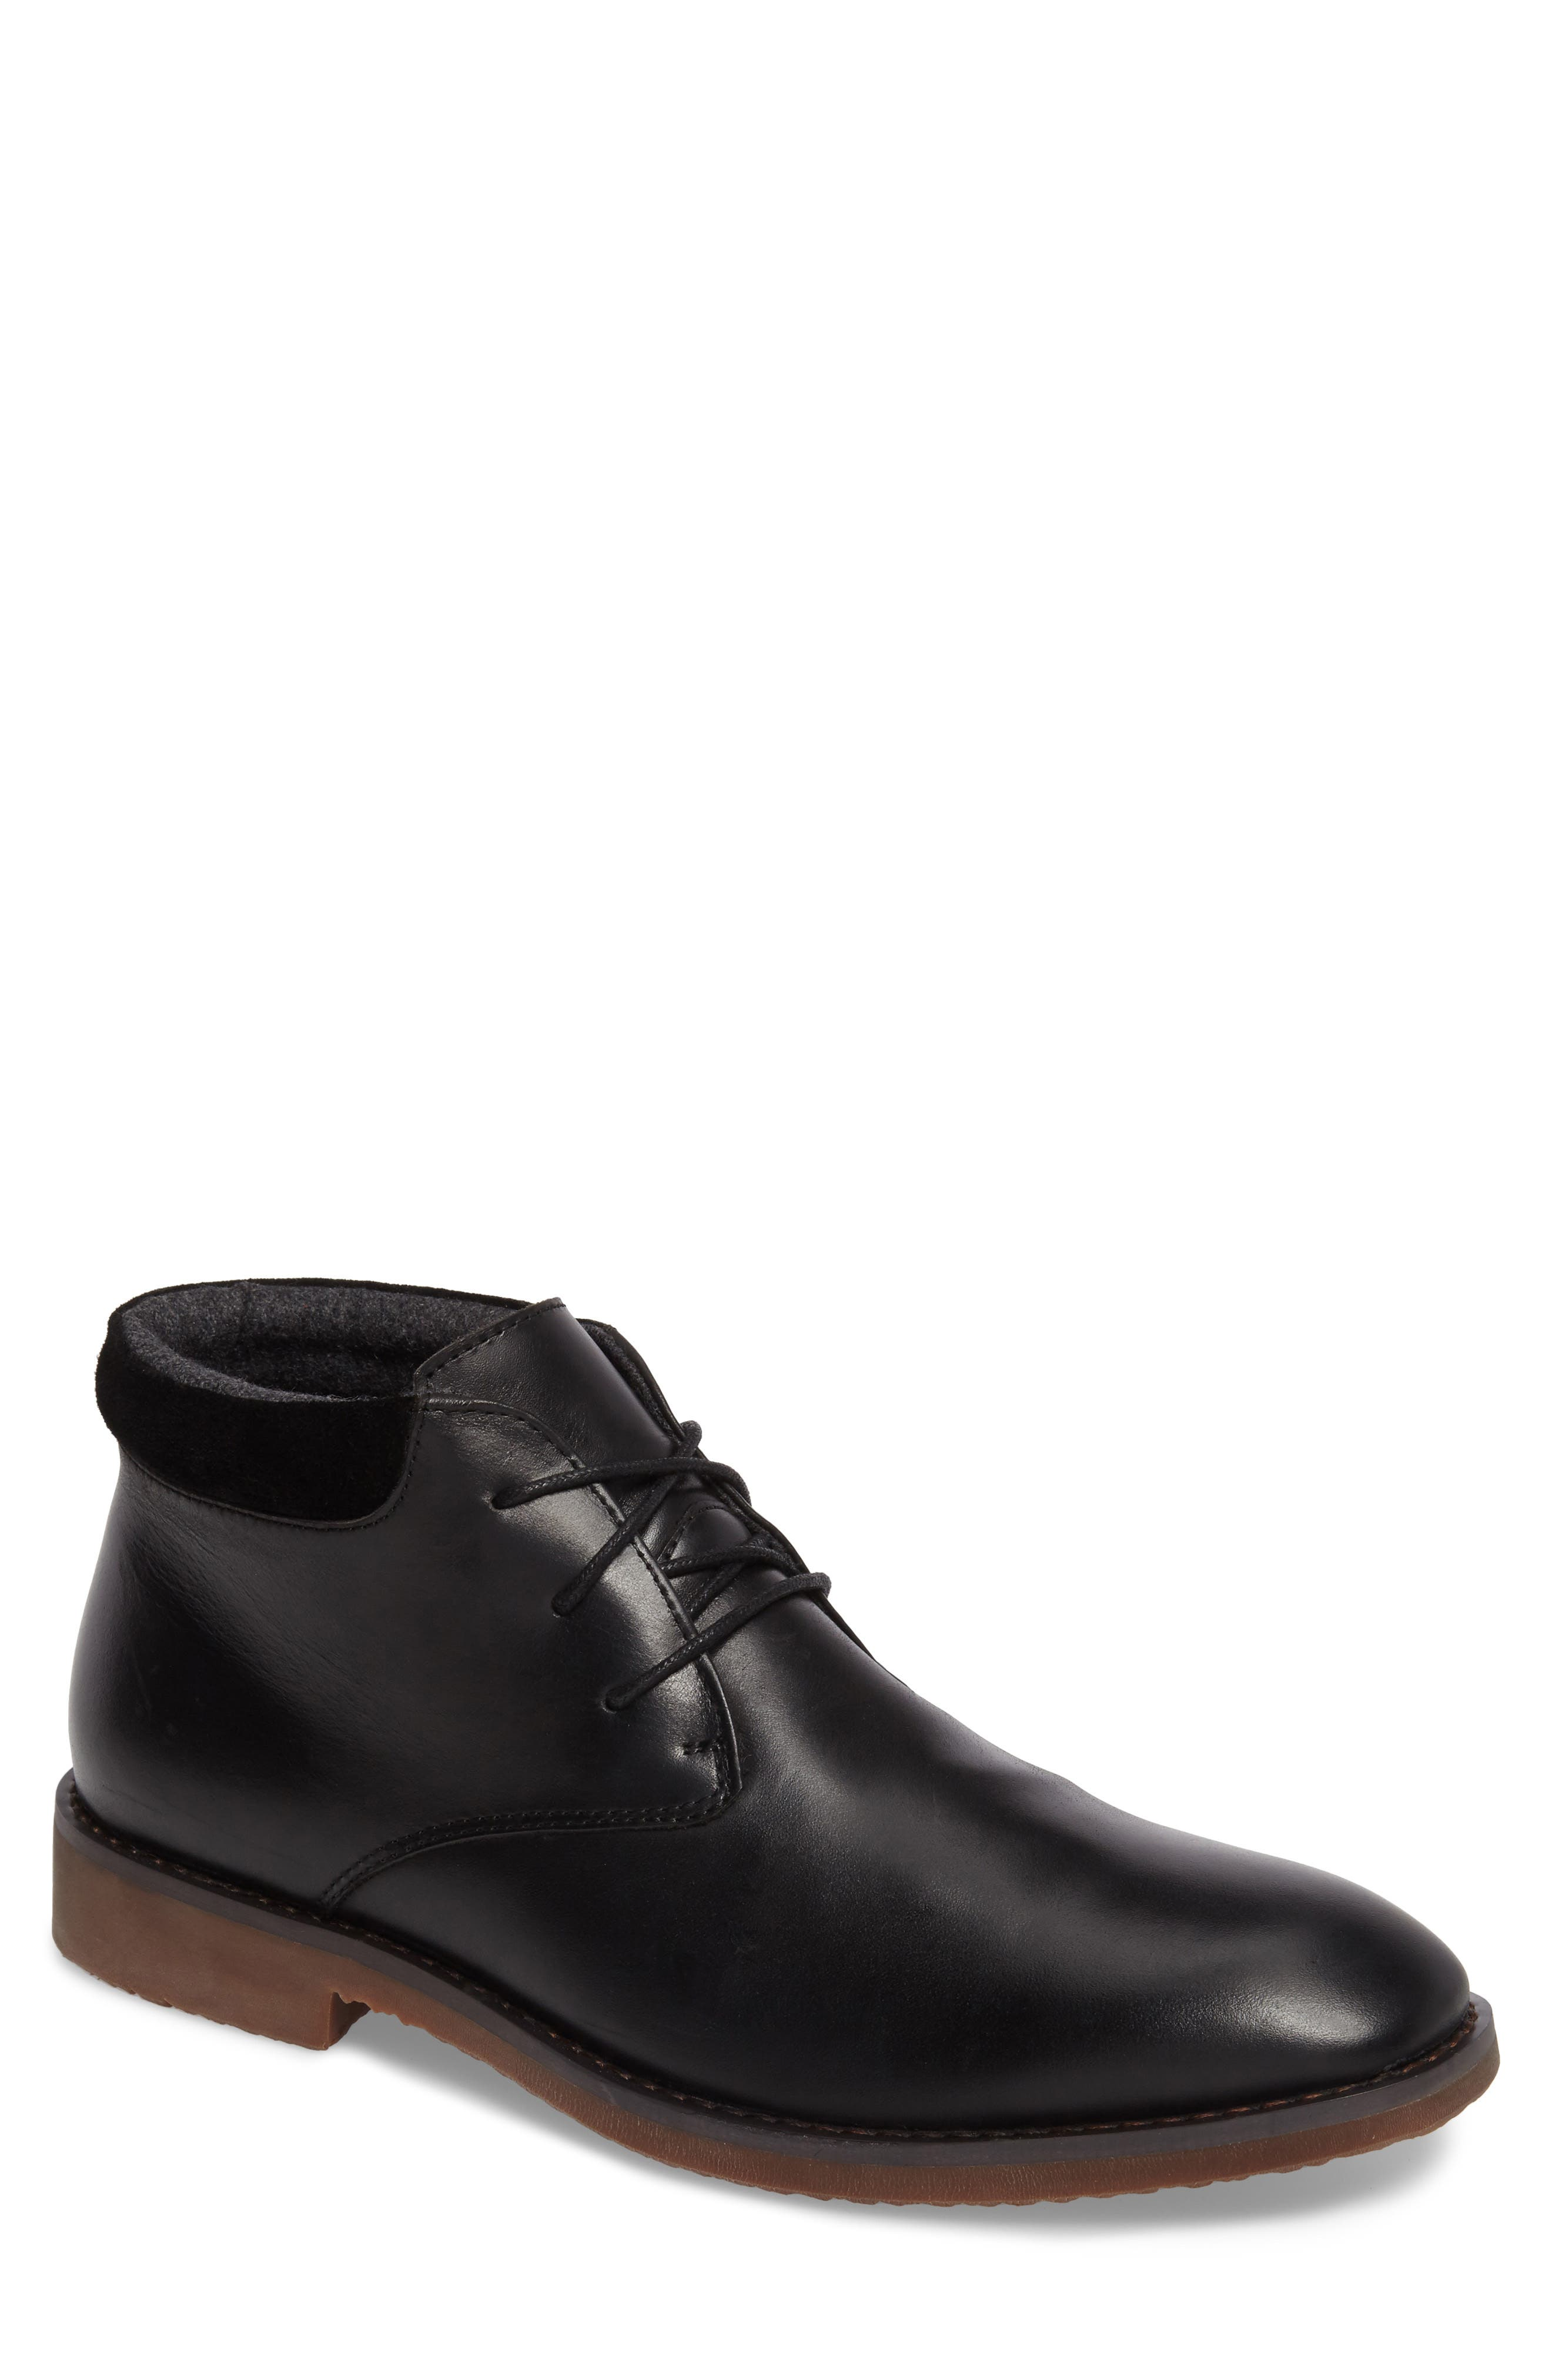 Alternate Image 1 Selected - English Laundry Talbot Chukka Boot (Men)